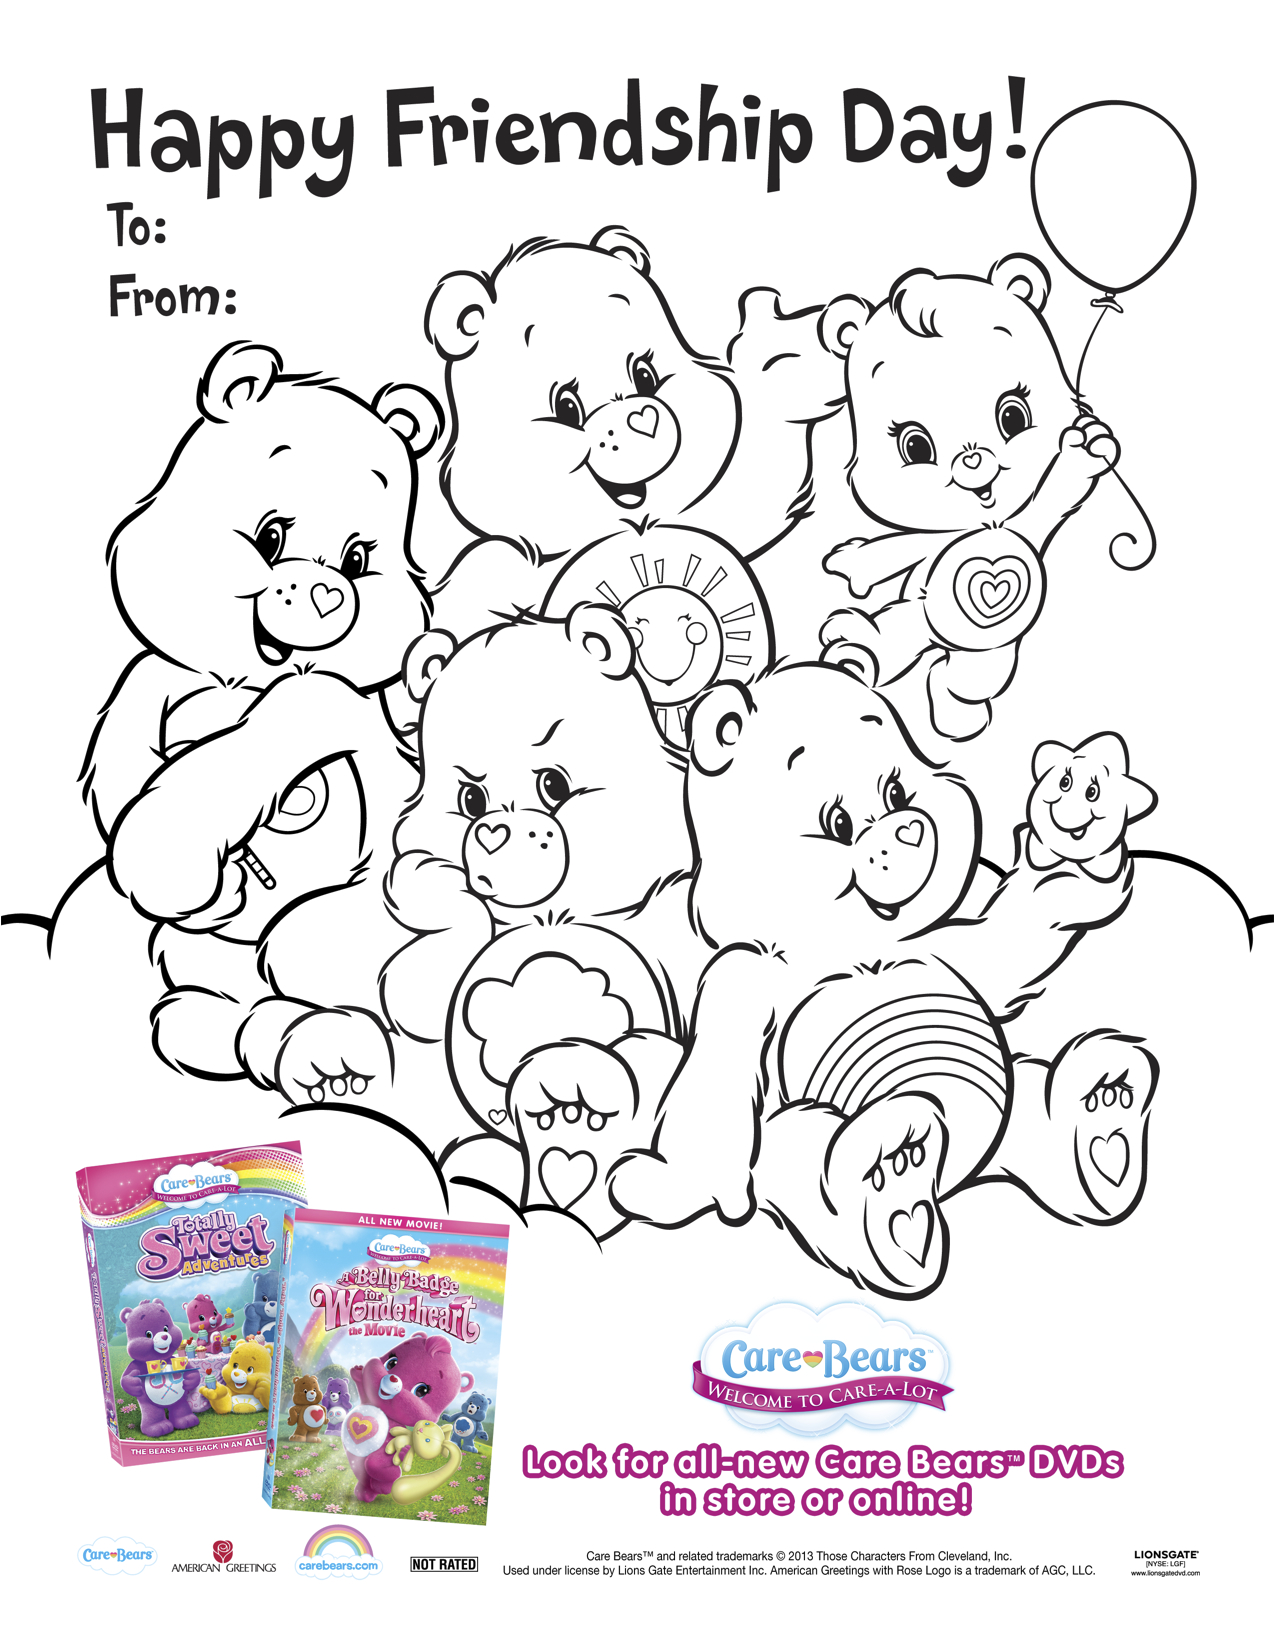 Care Bears Printable Friendship Day Coloring Page